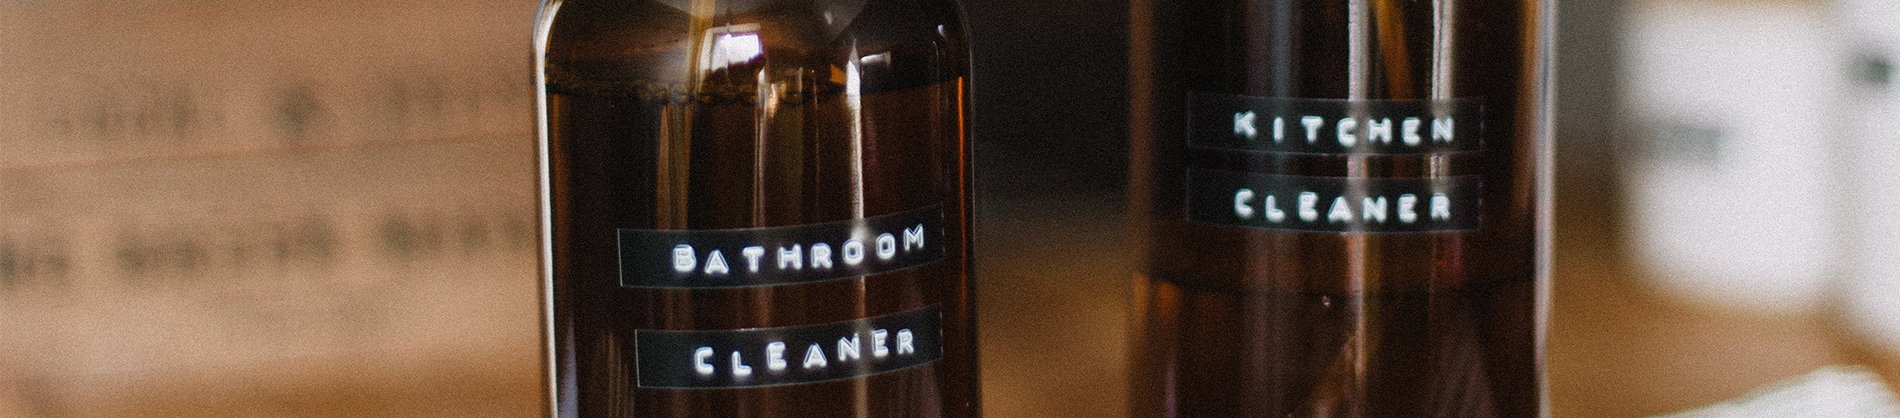 Bottles with bathroom and kitchen cleaner